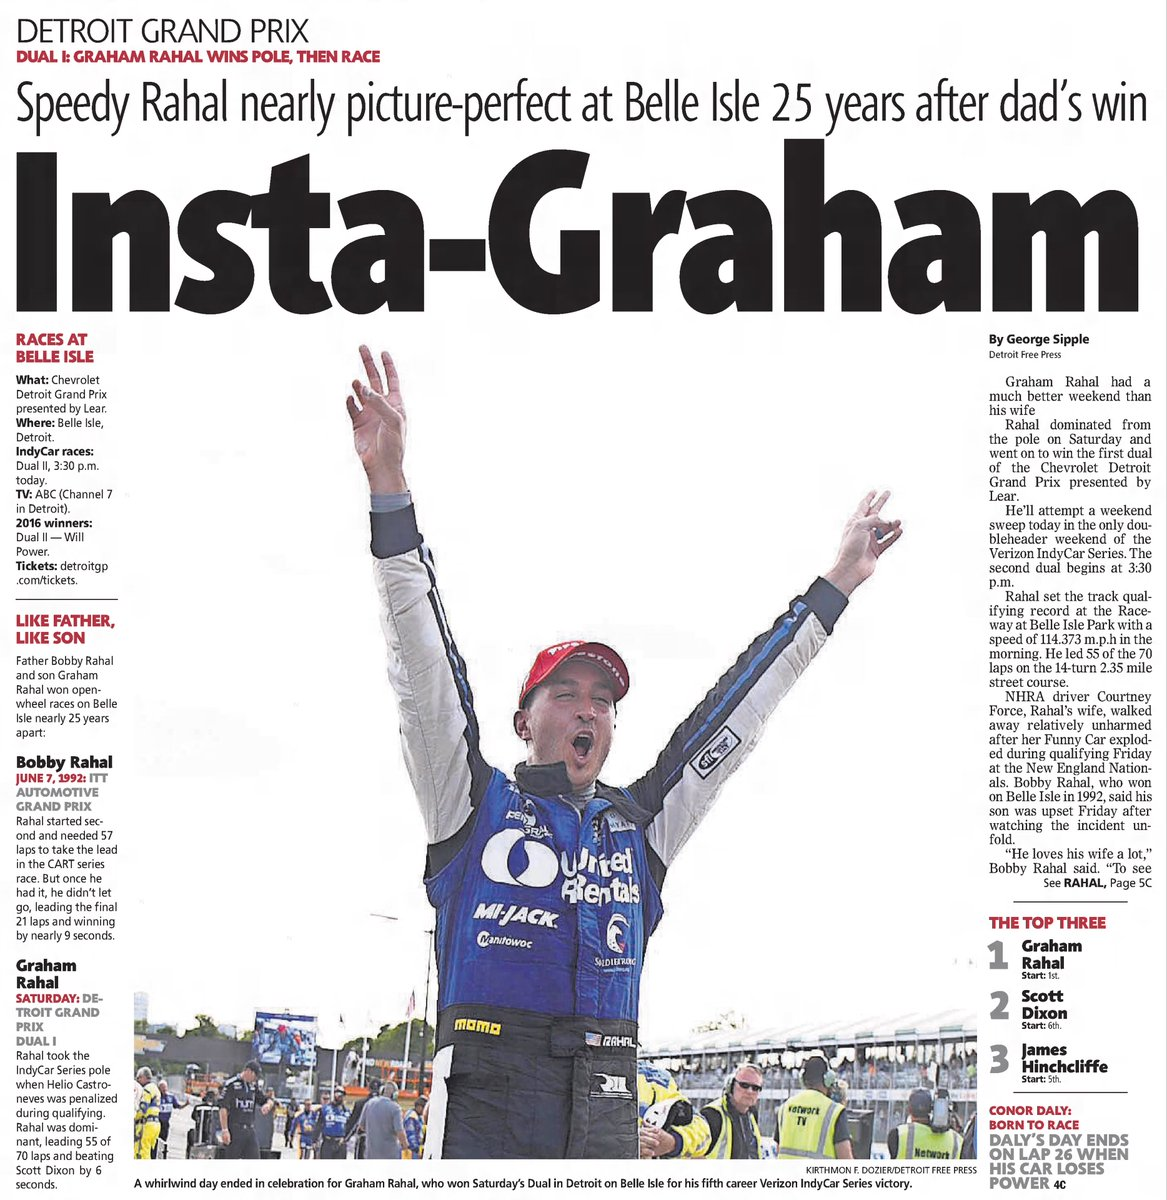 Gotta love the coverage in the @freep from #DualInDetroit I at the 2017 #DetroitGP as @GrahamRahal captured the 1st @IndyCar race of the weekend 25 years after his dad @BobRahal won the maiden race on Belle Isle! @RLLracing  #INDYCAR https://t.co/iPQcCJ5up5